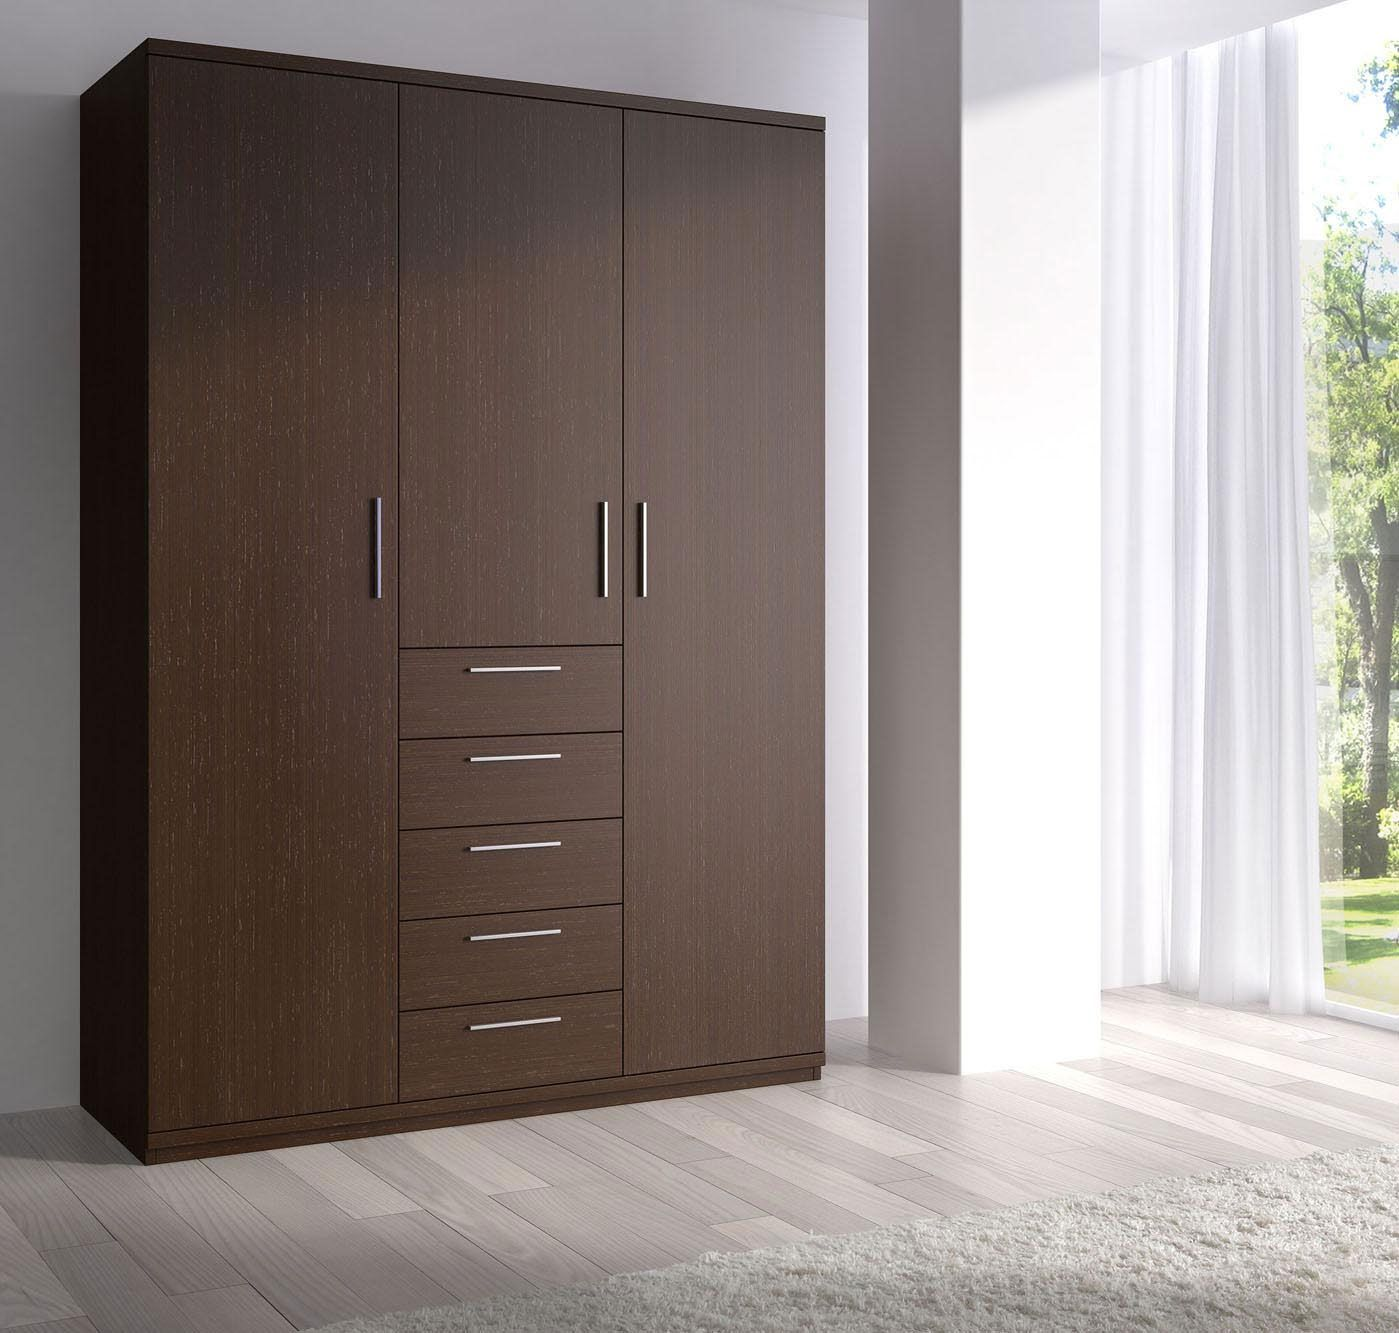 Wood Wardrobe Closet Plans ~ Bedroom classy wooden closet wardrobe ideas with modern